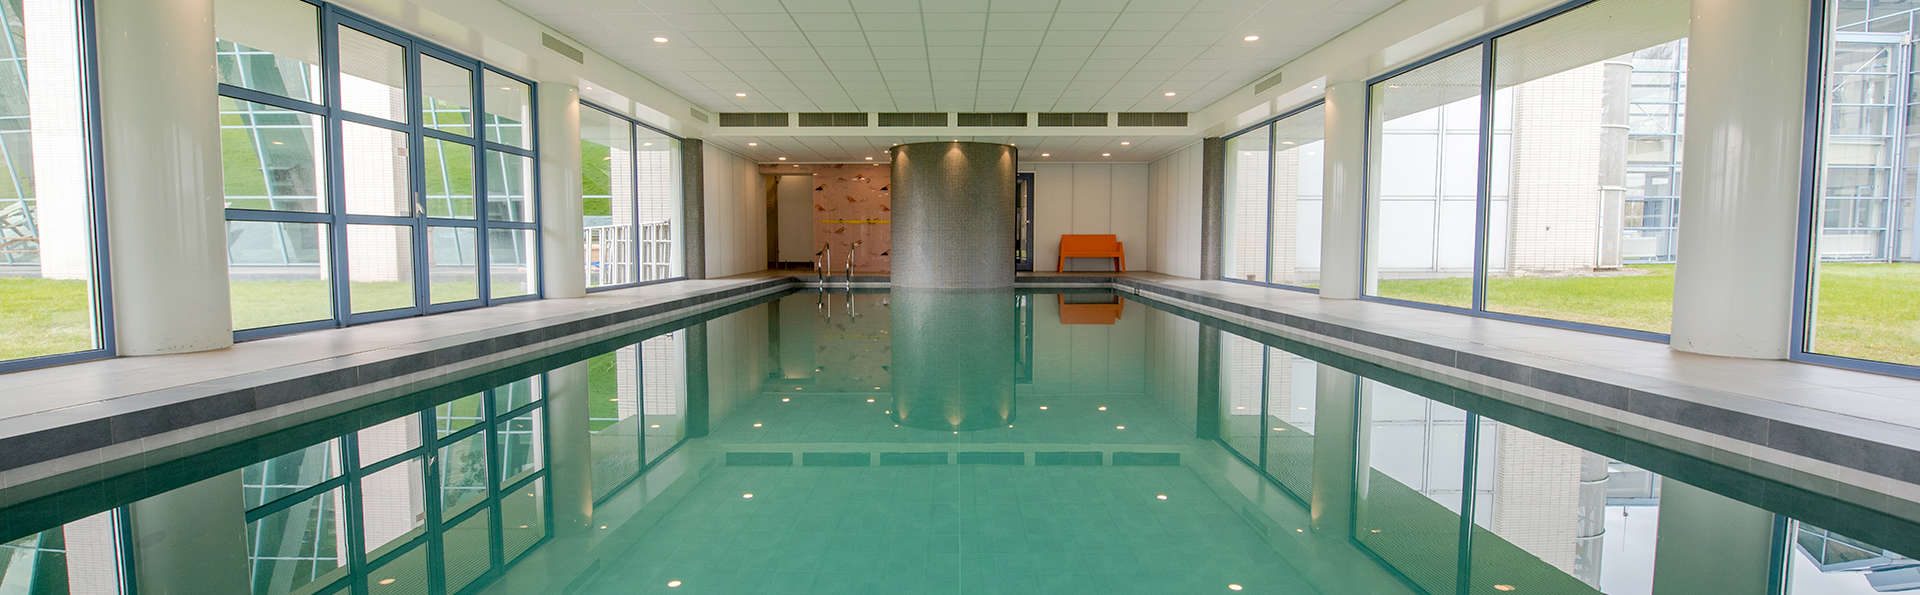 Best Western Plus Hotel Groningen Plaza - EDIT_NEW_Pool.jpg